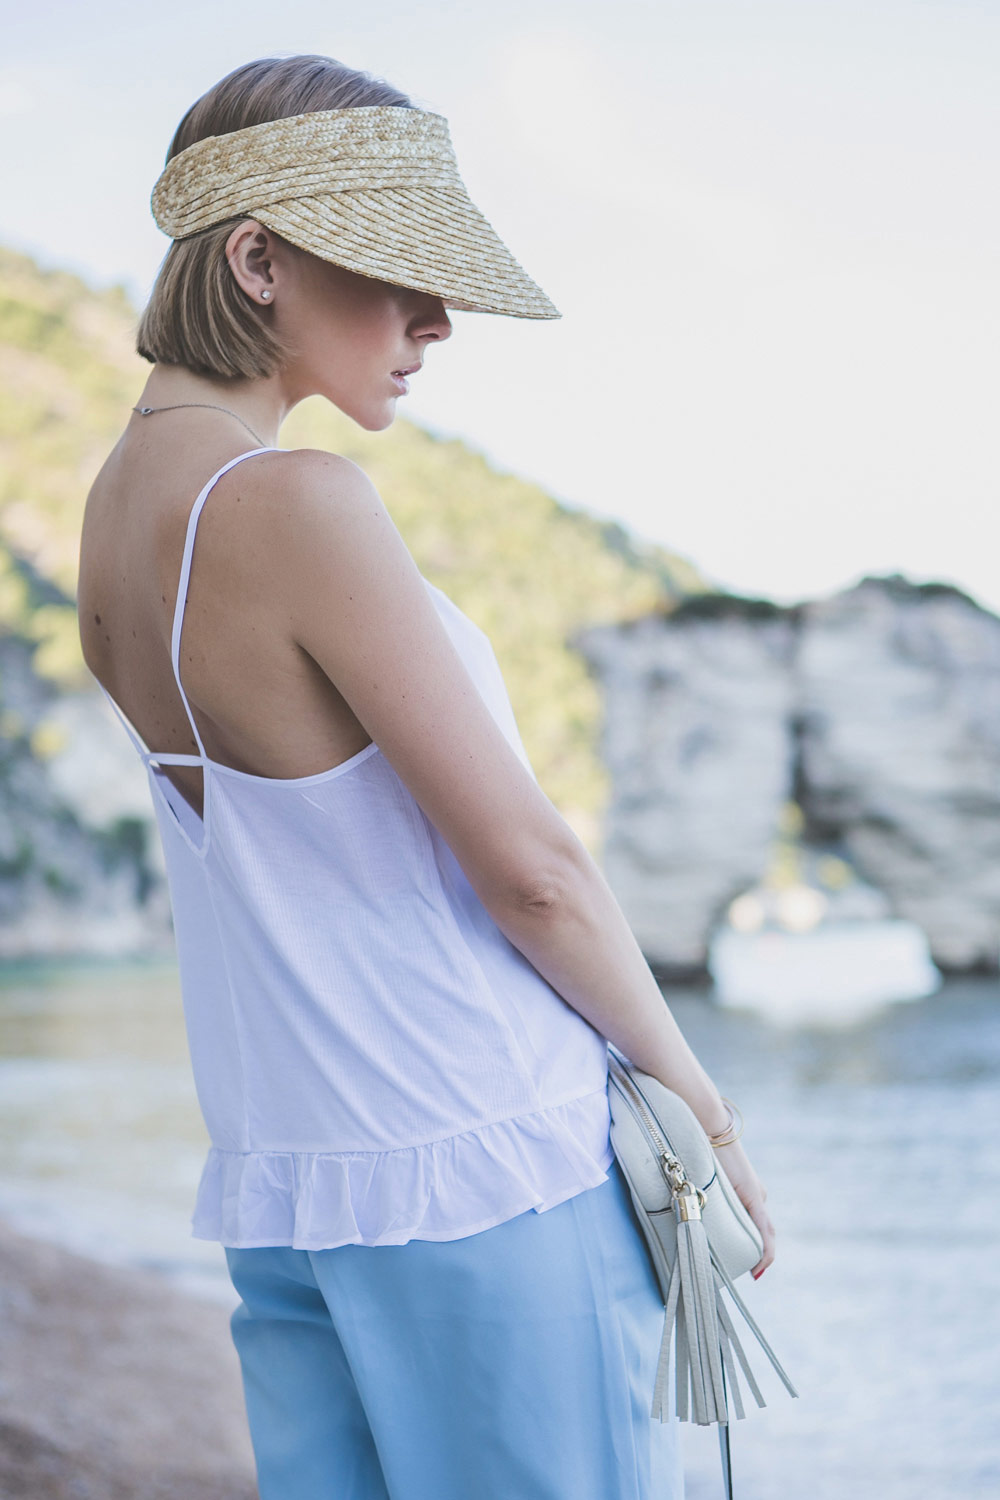 darya-kamalova-thecablook-fashion-lifestyle-blogger-from-thecablook-com-in-puglia-gargano-baia-dei-faraglioni-allegro-italia-in-asos-visor-and-blue-frontrowshop-shorts-with-gucci-disco-soho-bag-1586